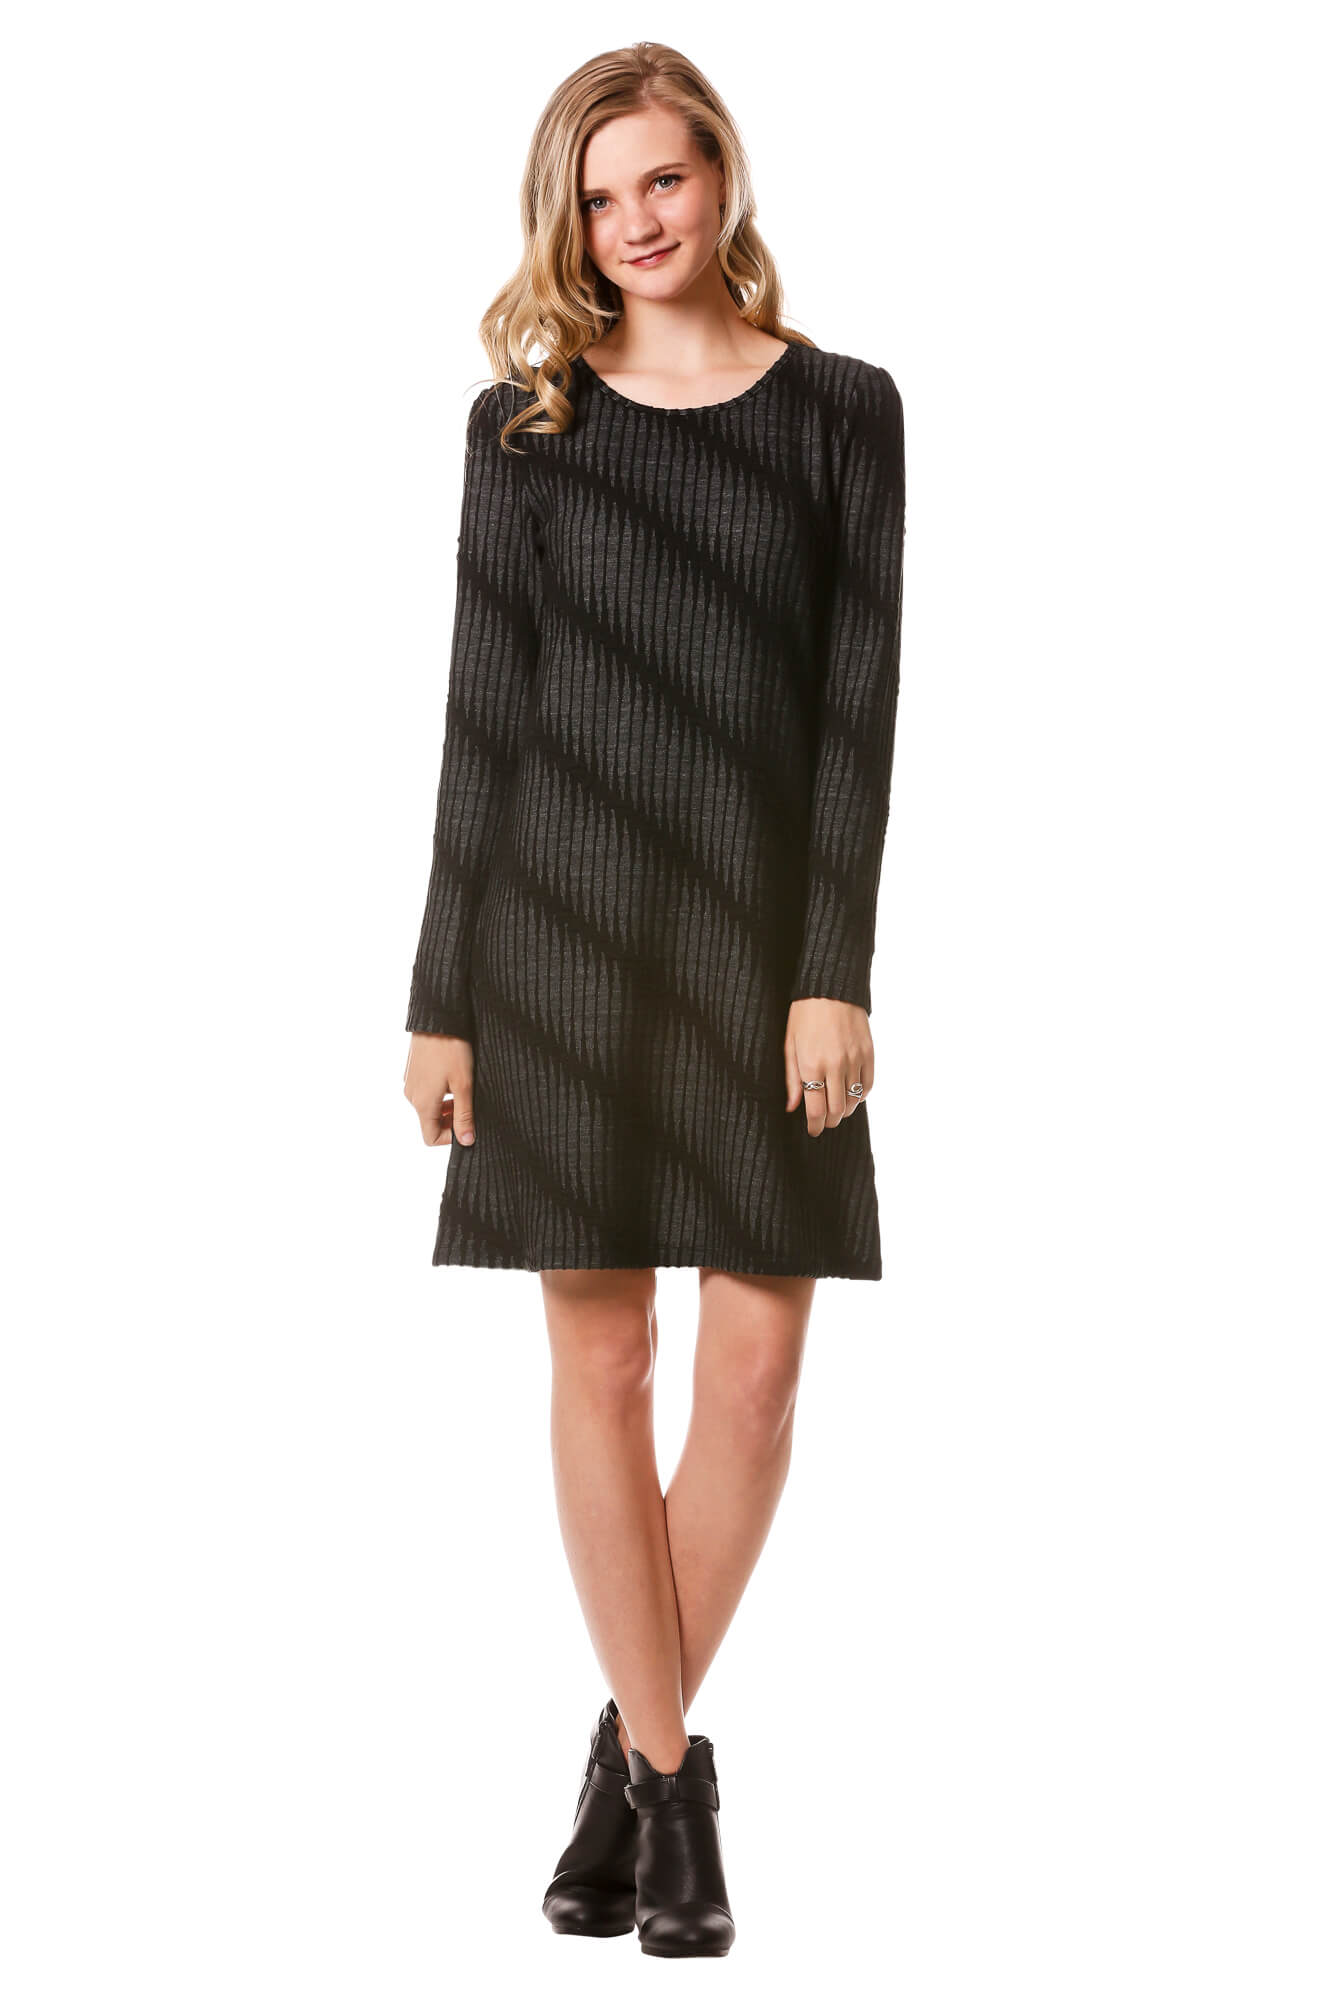 Women's Jacquard Textured A-Line Dress with Diagonal Stripes | Neesha